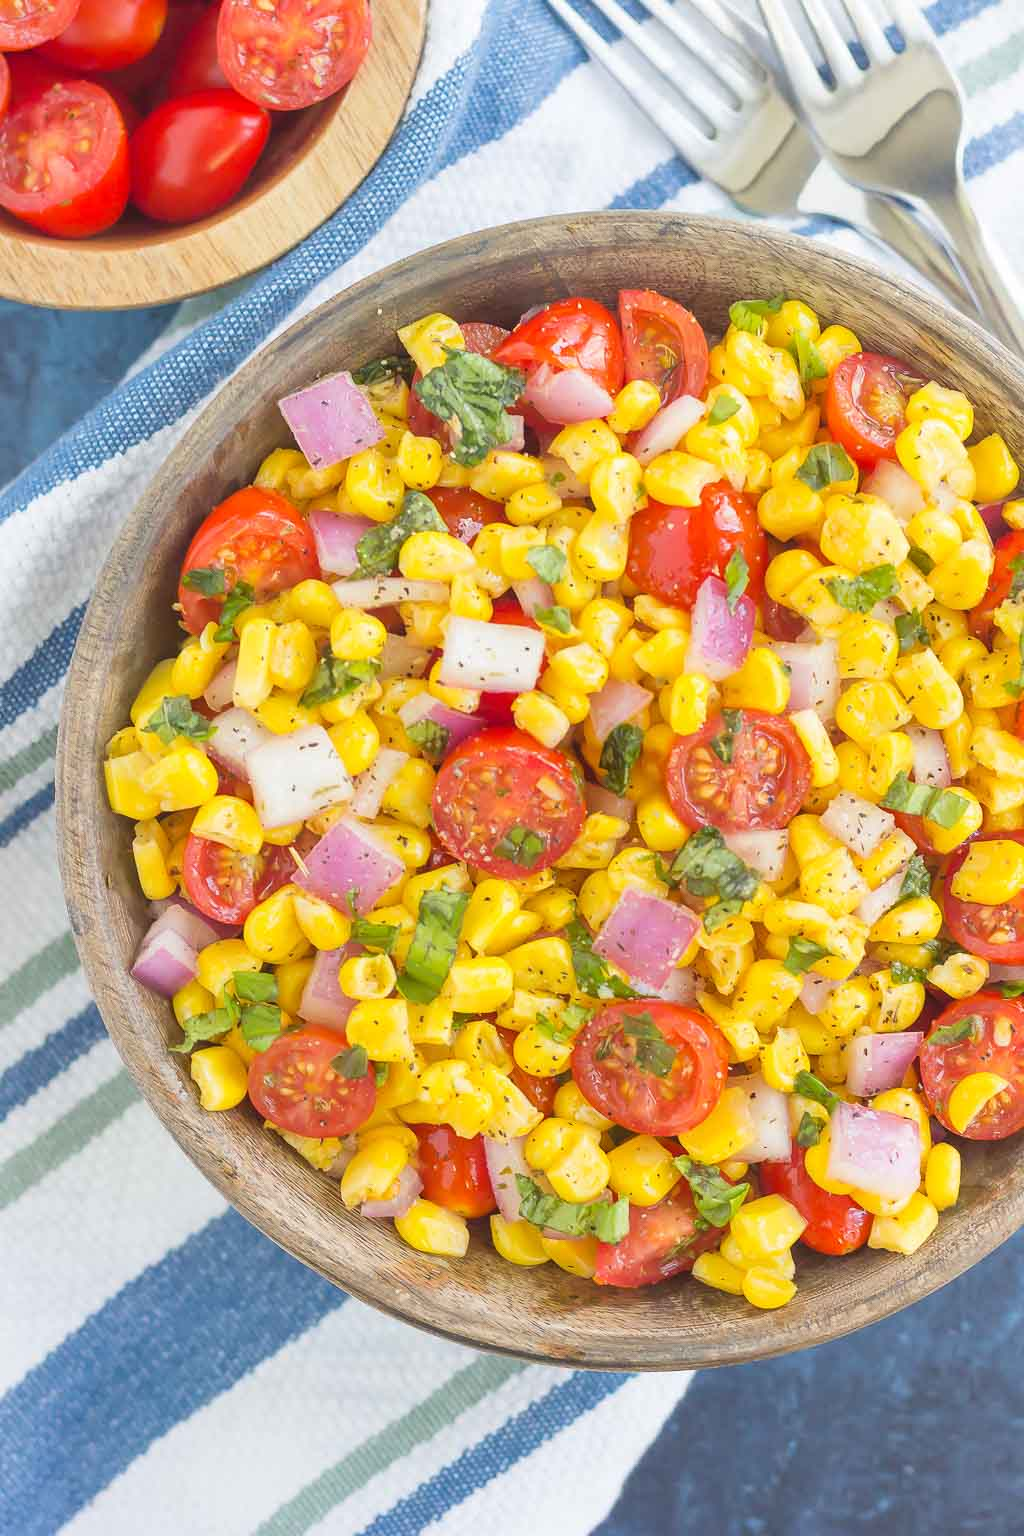 With fresh corn cut straight from the cob, cherry tomatoes, spices and a light dressing, this corn and tomato salad is perfect for a summer lunch or dinner!